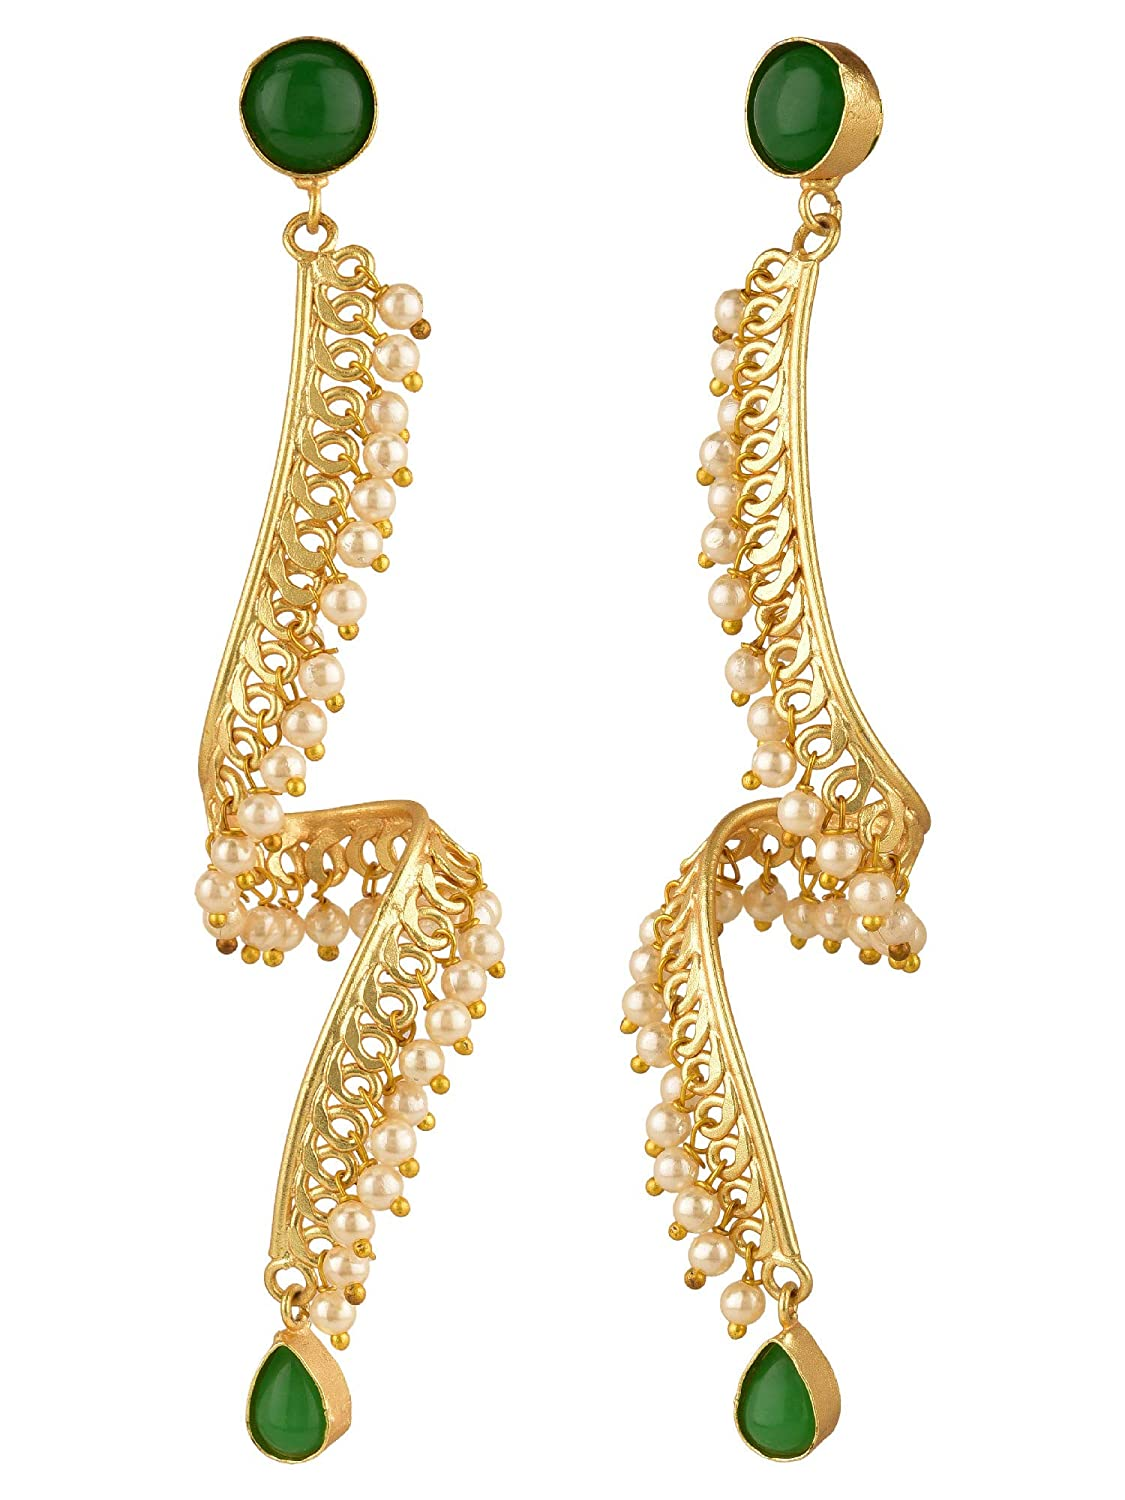 Efulgenz Indian Bollywood 14K Gold Plated Crystal Pearl Spiral Twisted Dangling Big Earrings Jewelry Set